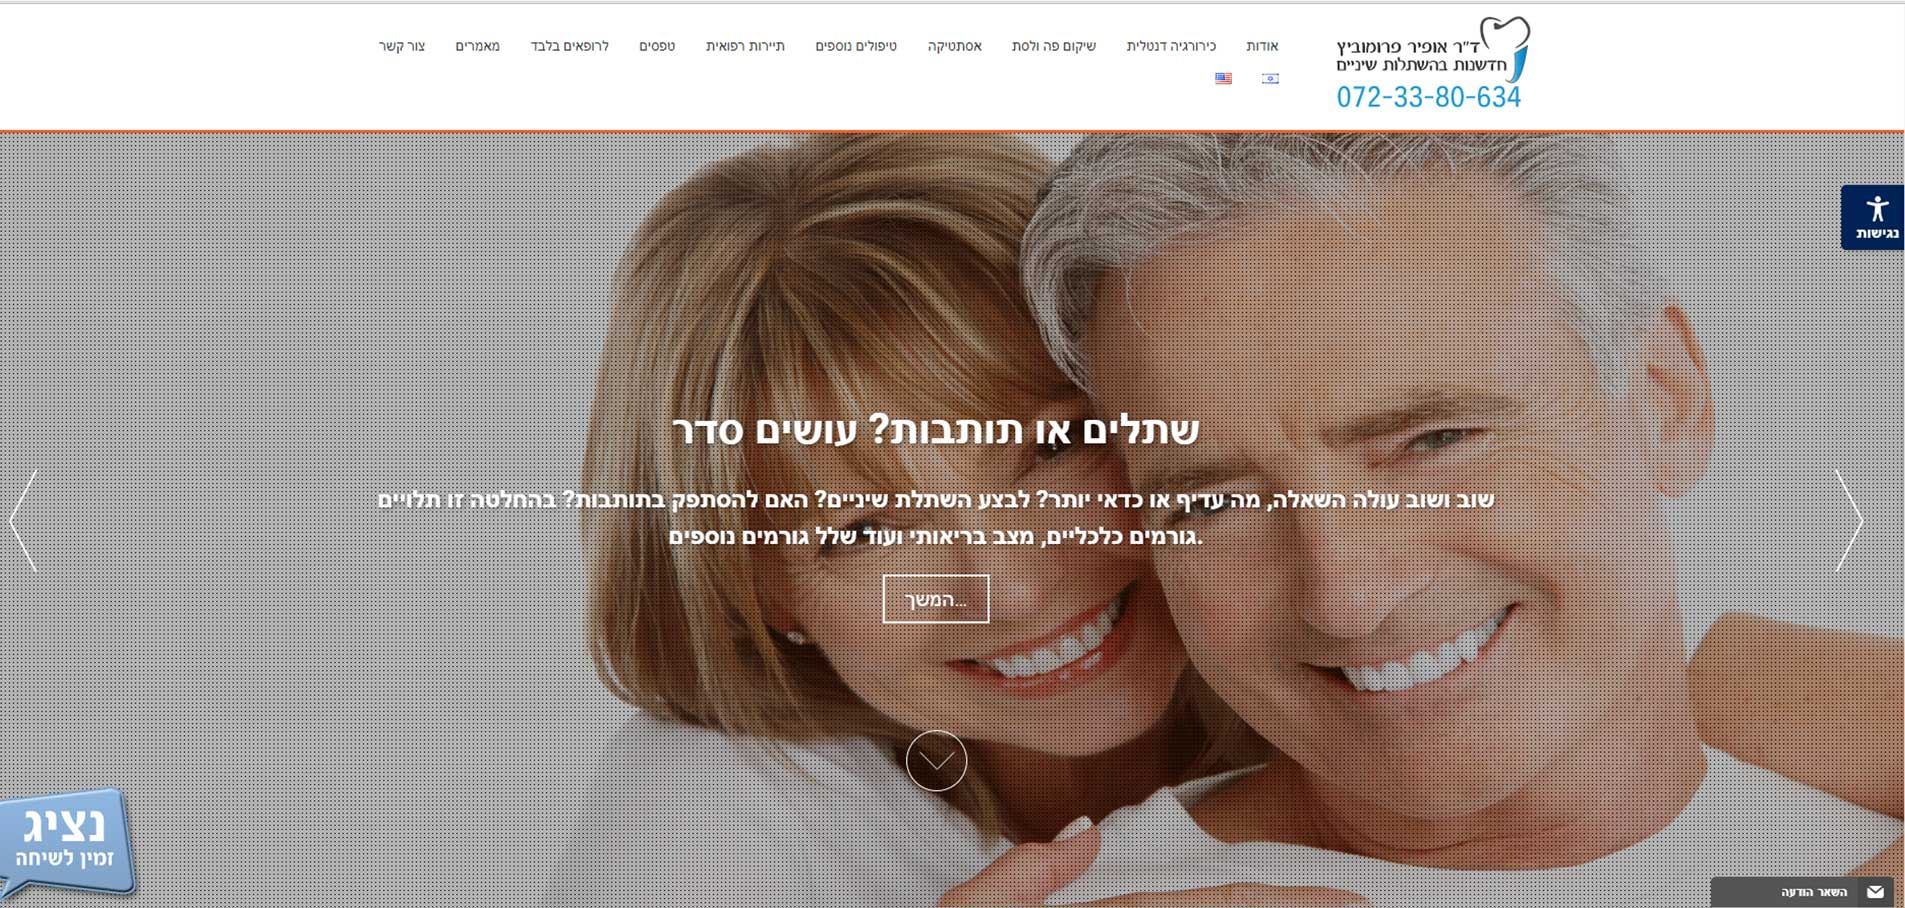 Dr.Ophir Fromovich web site